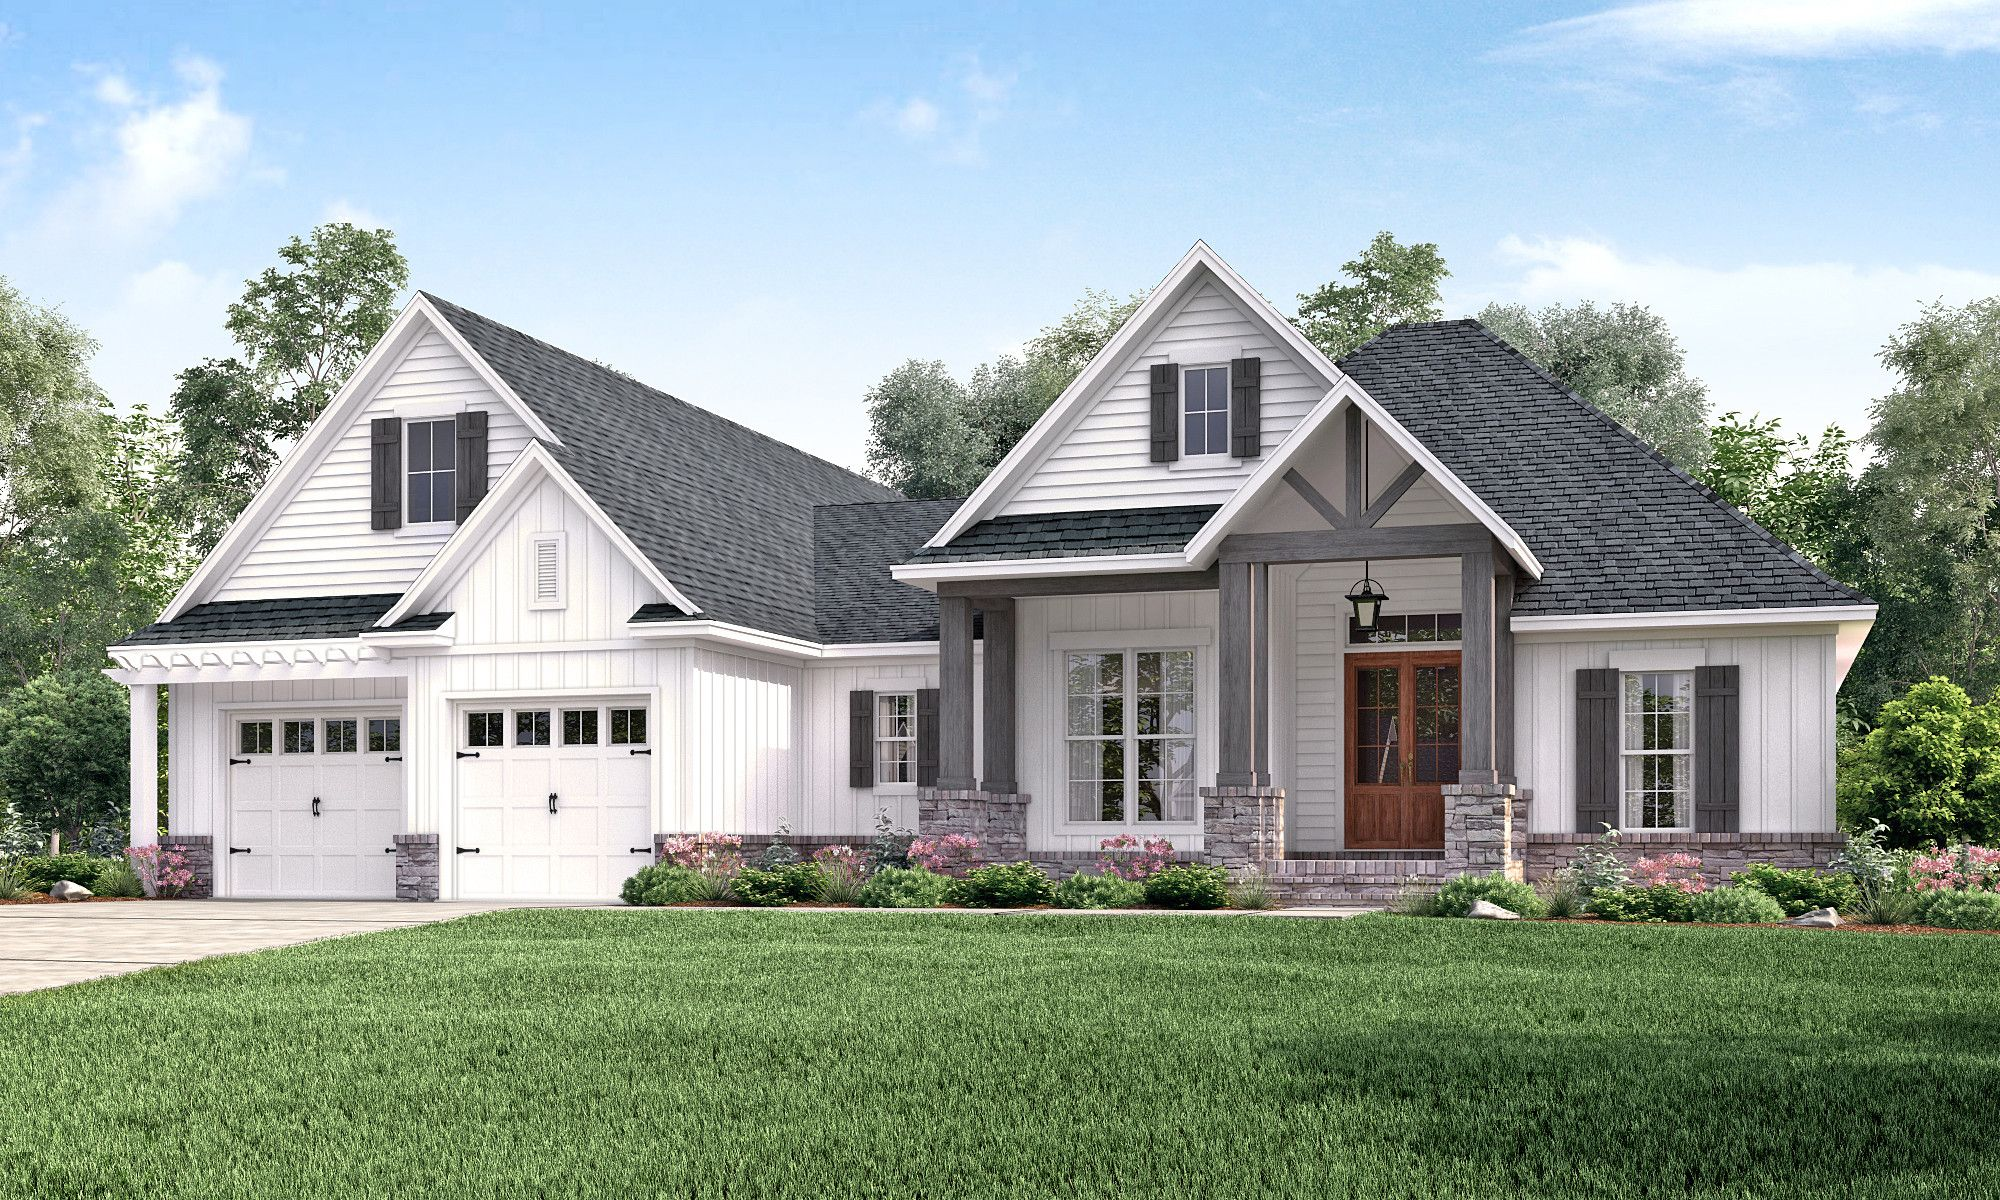 alpine court house plan | master closet, laundry rooms and craftsman